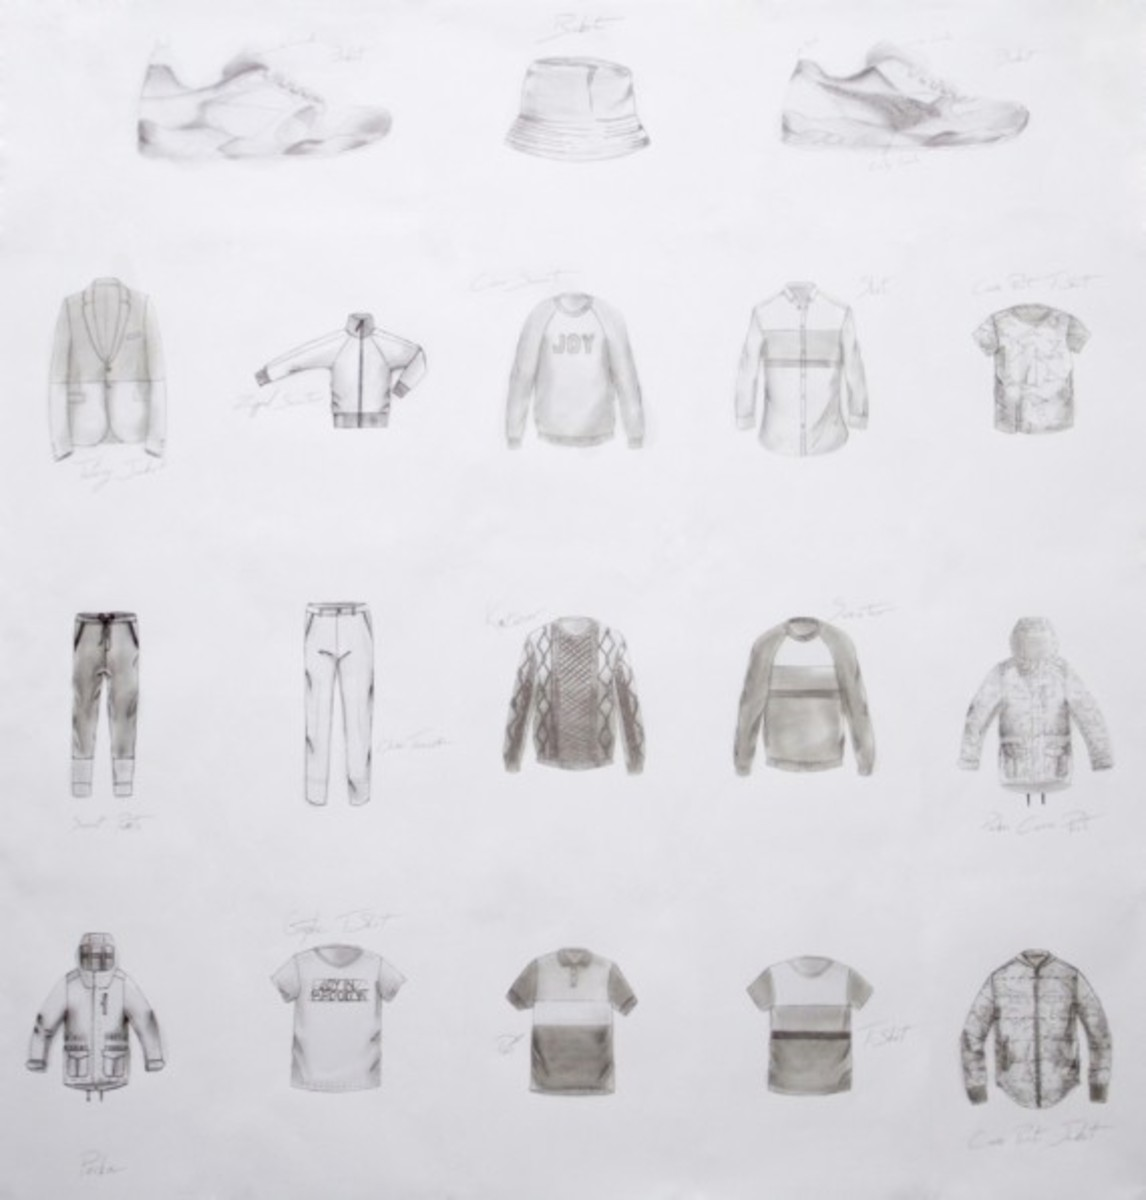 bwgh-for-puma-fall-winter-2014-collection-first-sketches-02